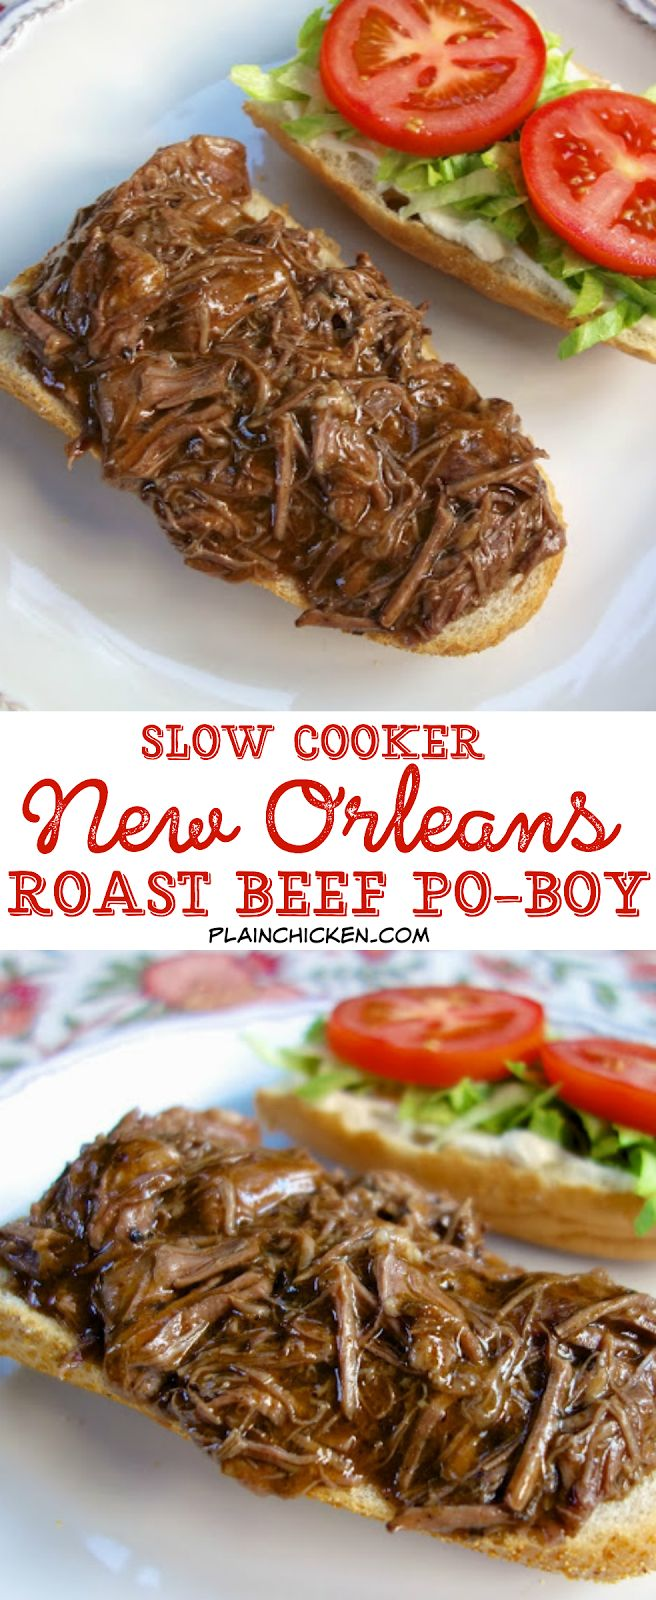 Slow Cooker New Orleans Roast Beef Po-Boy - inspired by our meal at Felix's in New Orleans. Only 5 ingredients! Slow cooked pot roast seasoned with cajun seasoning and simmered in an easy gravy. Can serve as a sandwich or over rice, noodles or mashed potatoes. This stuff is SO good!! Better than the original!